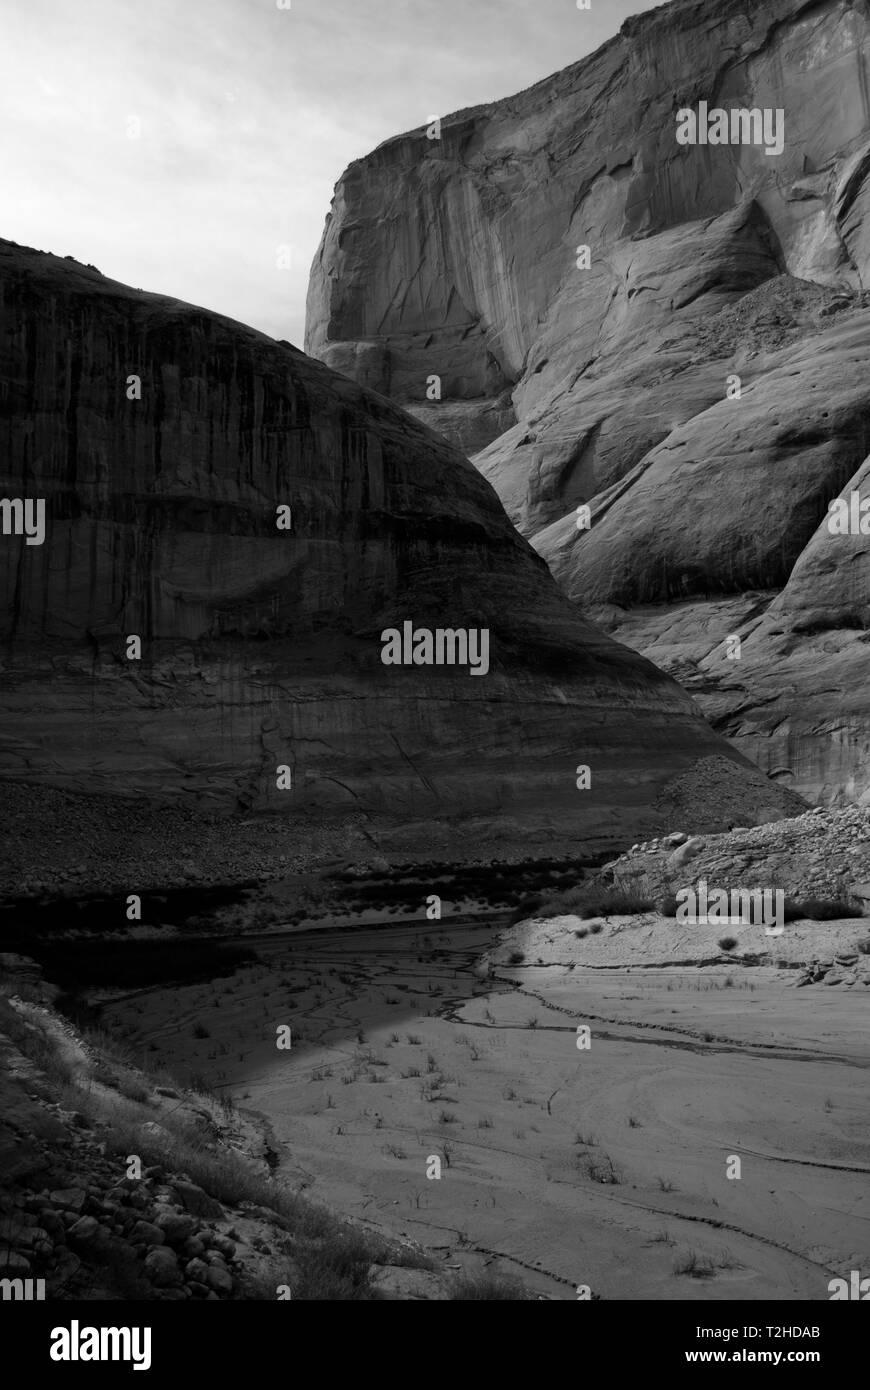 Sandstone valley in black and white during hot days. - Stock Image